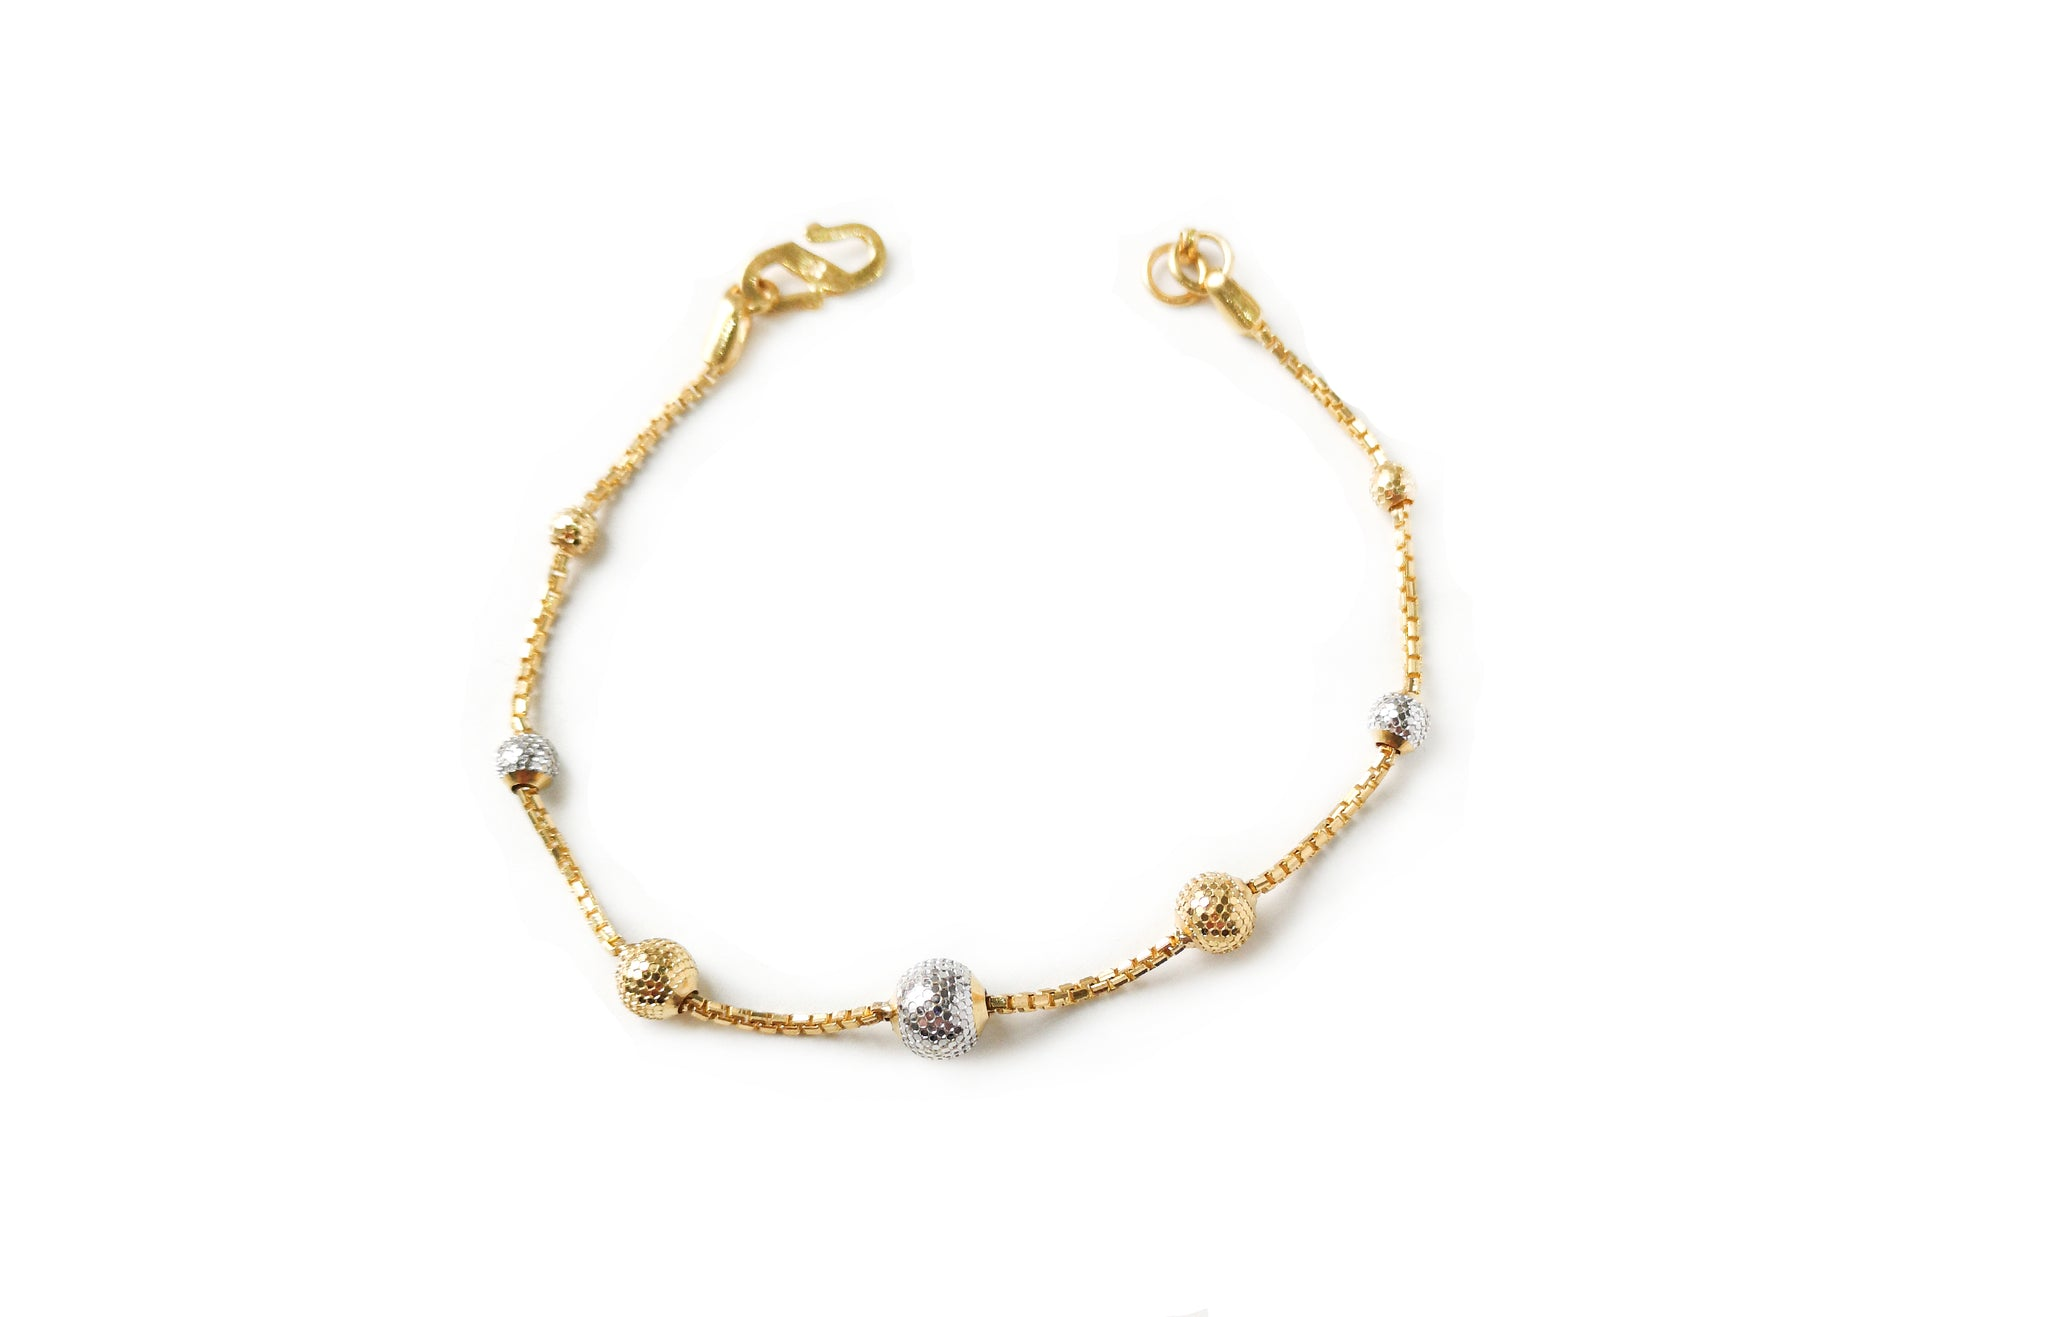 22ct Gold Bracelet with Diamond Cut and Rhodium Design (4.8g) LBR-7664